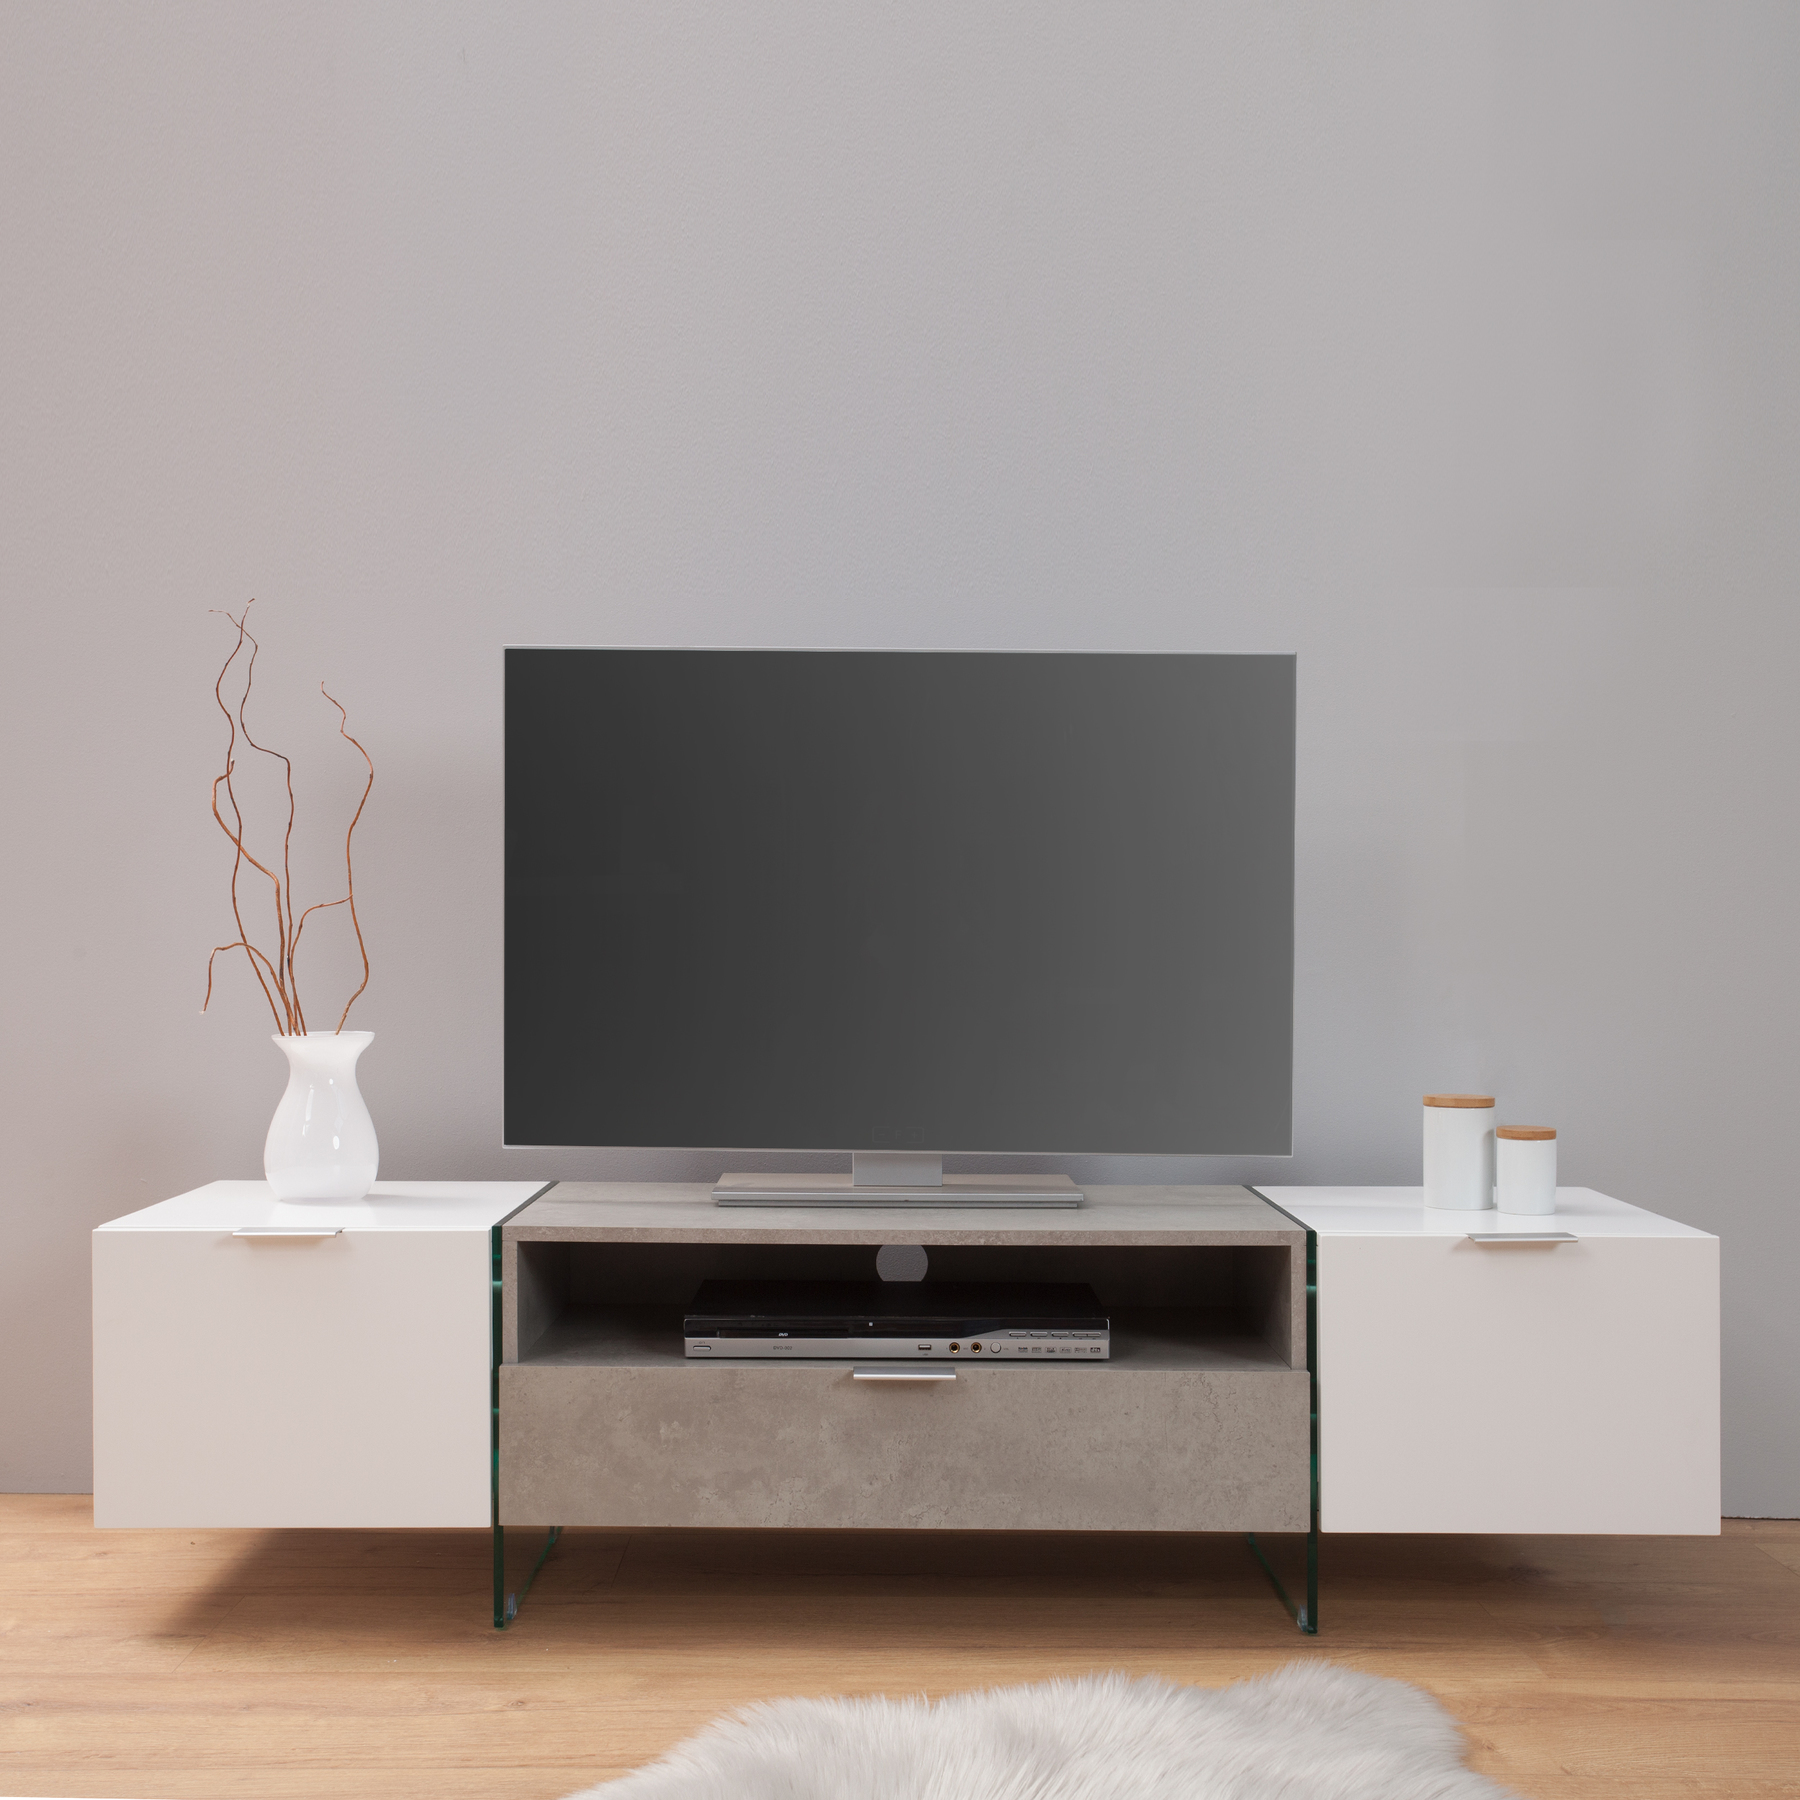 design tv lowboard onyx edelmatt weiss beton optik 160 cm board mit schublade ebay. Black Bedroom Furniture Sets. Home Design Ideas